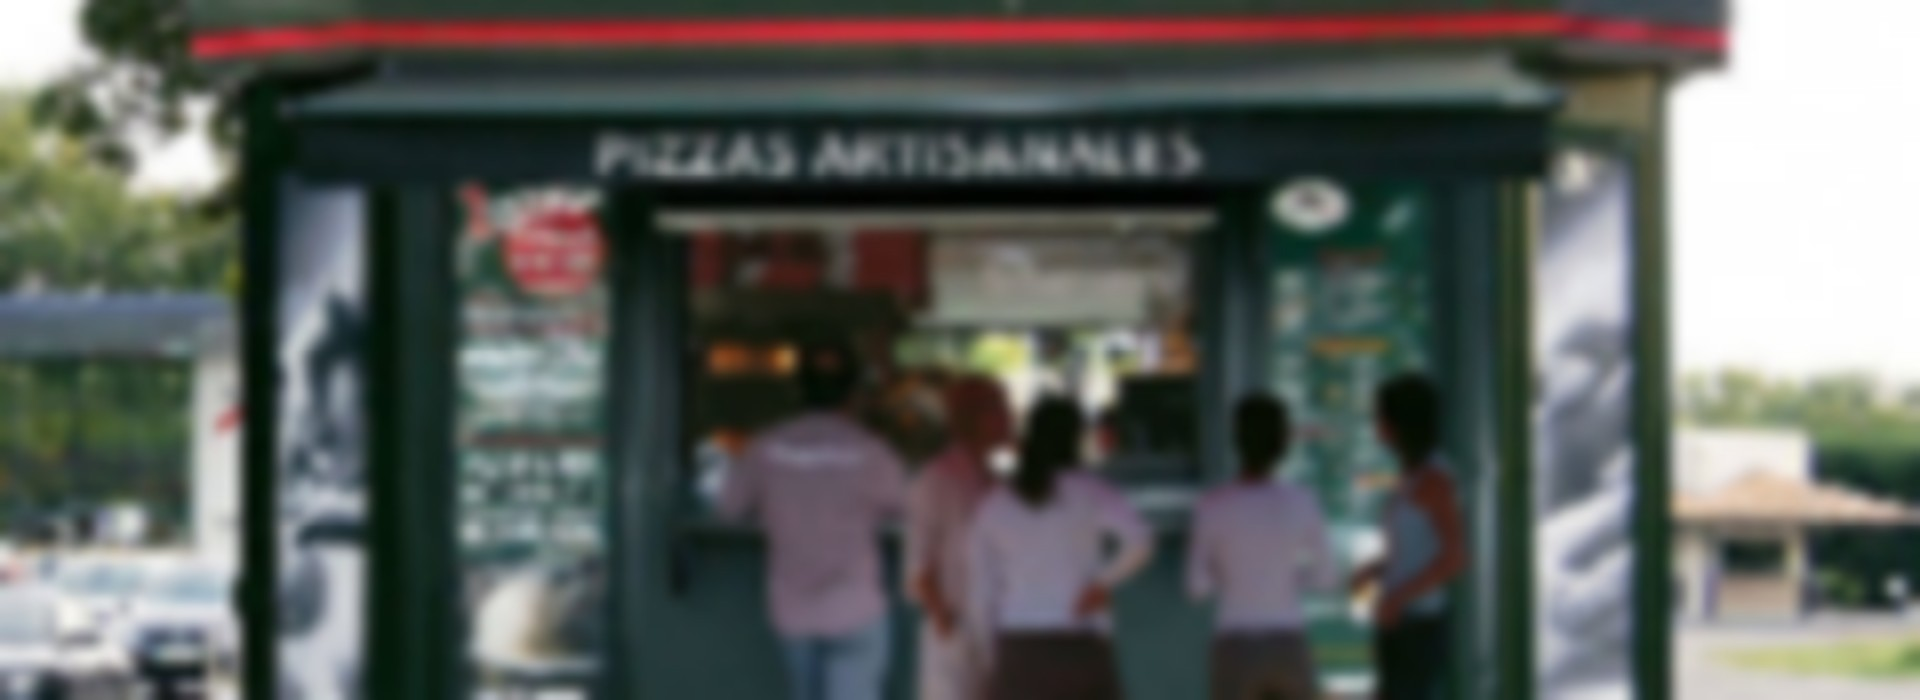 LE KIOSQUE A PIZZAS